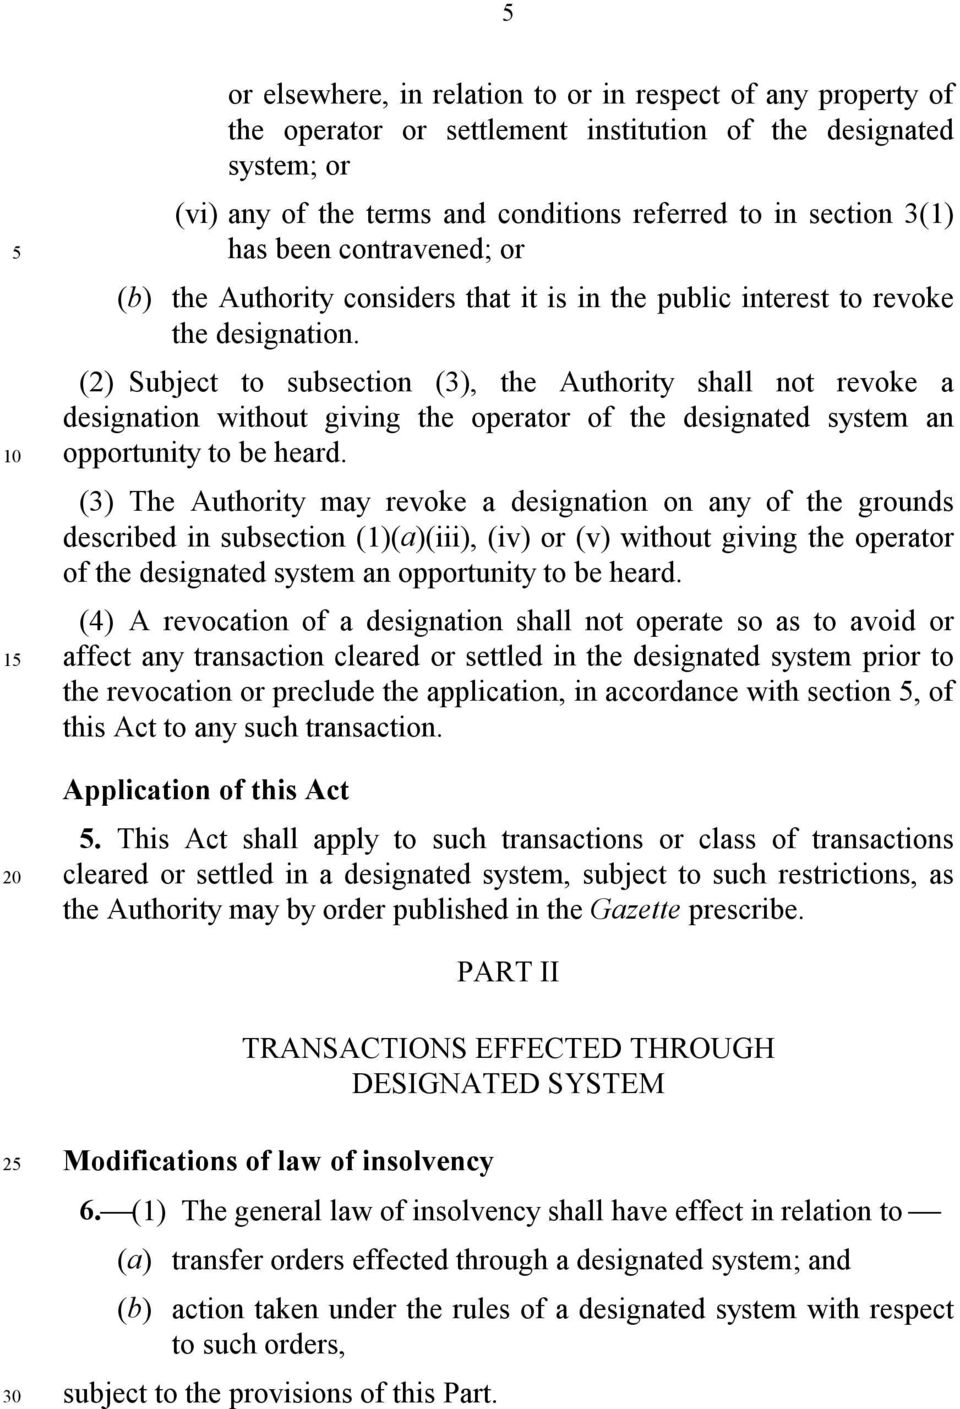 (2) Subject to subsection (3), the Authority shall not revoke a designation without giving the operator of the designated system an opportunity to be heard.